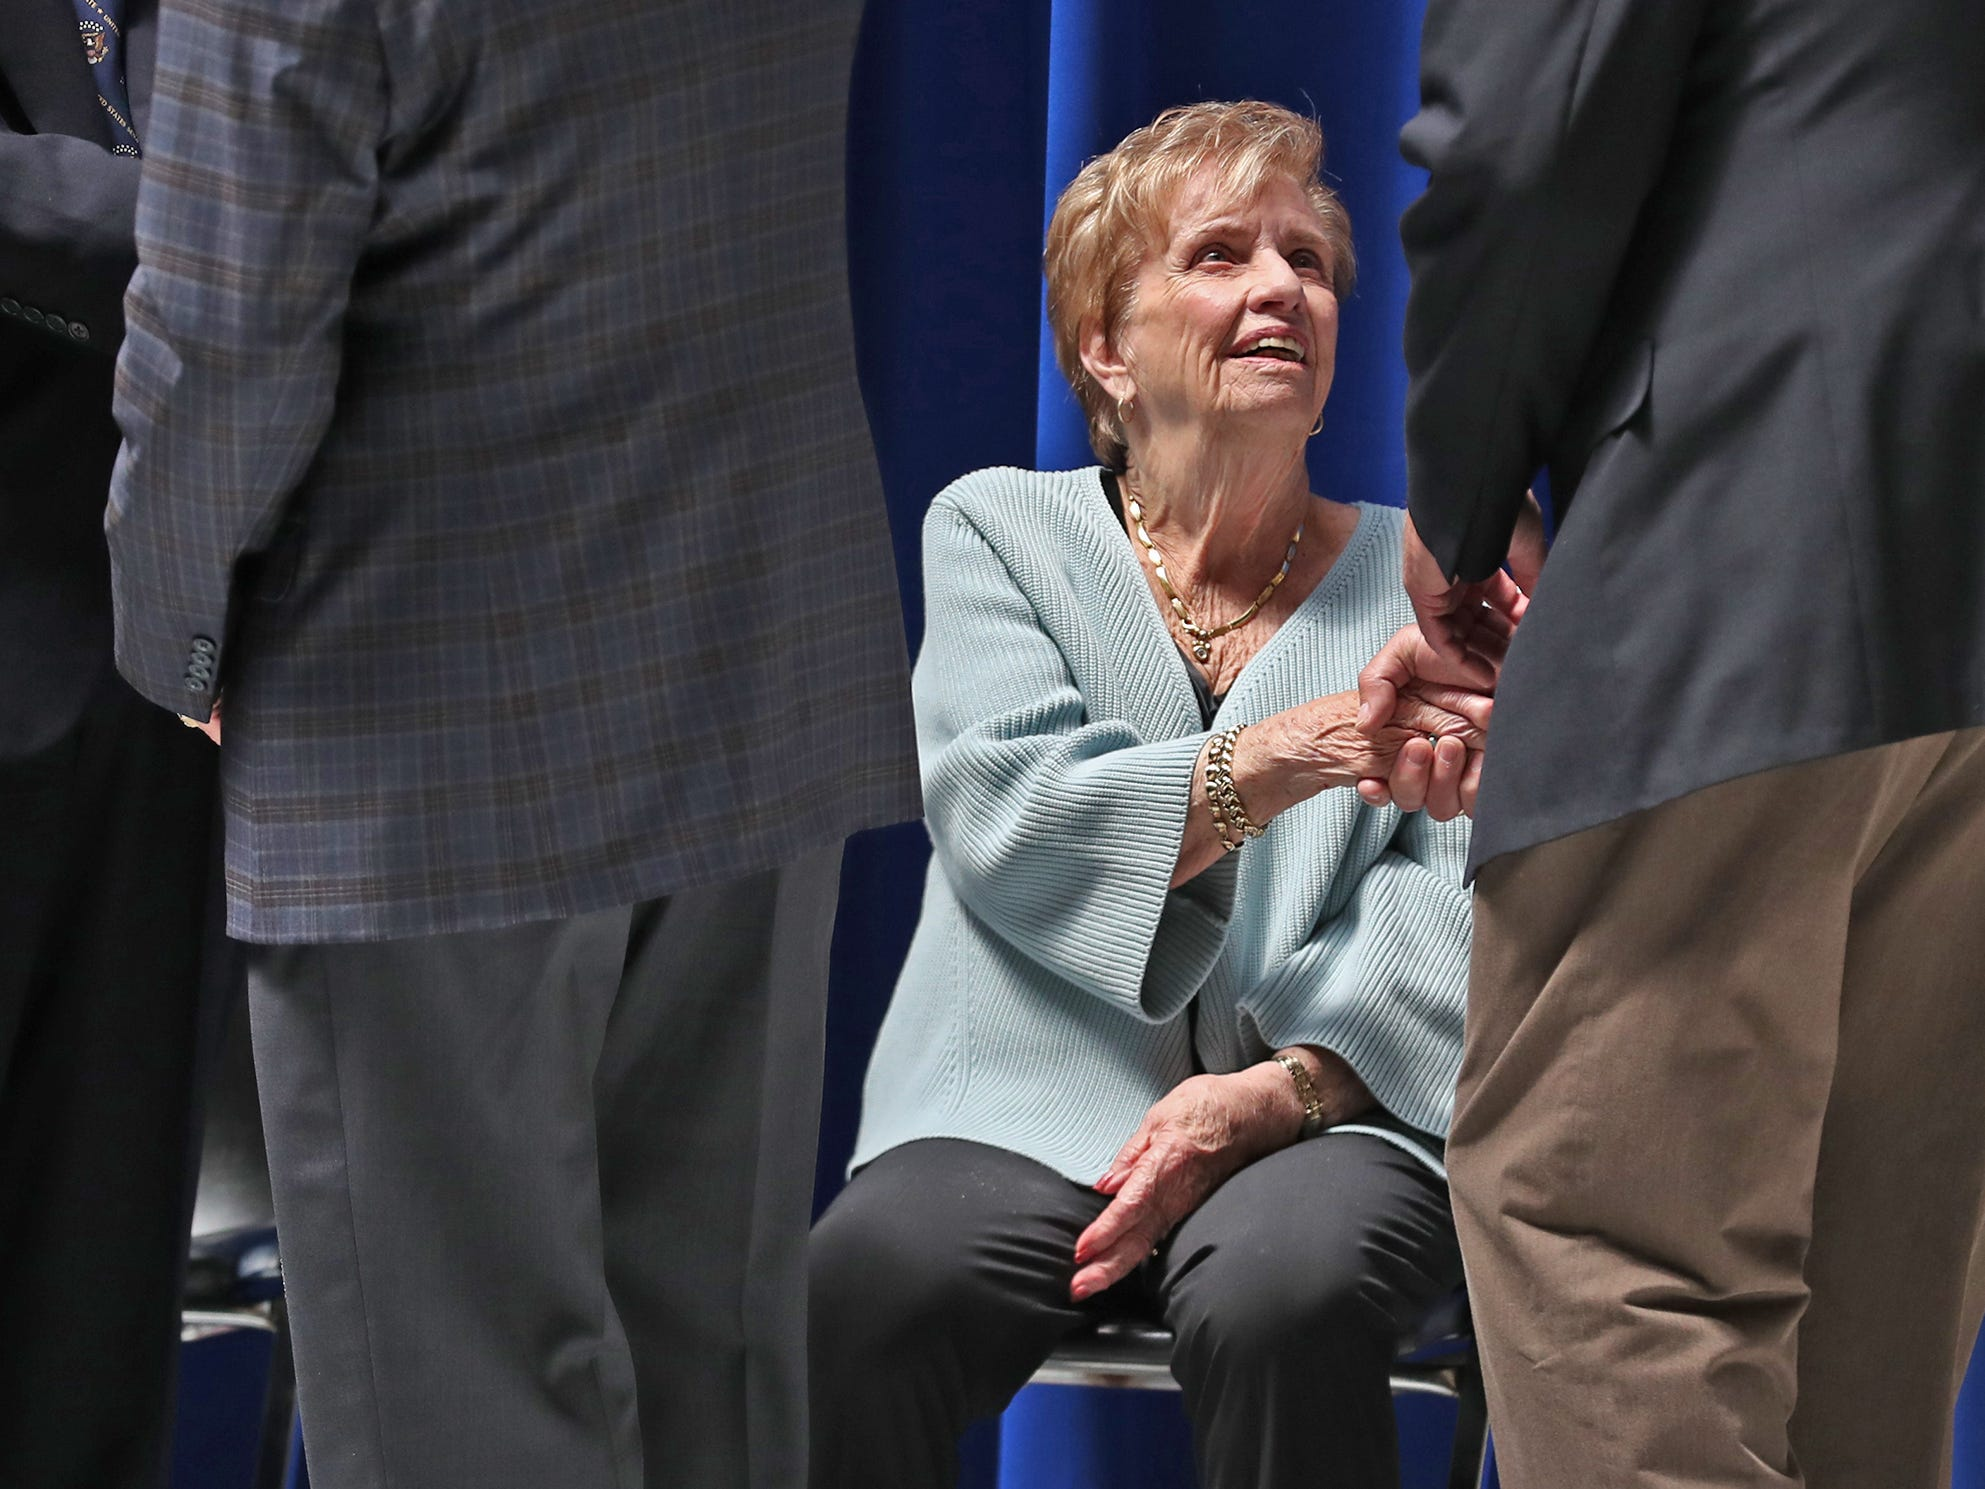 Char Lugar, wife of former Senator and Mayor Richard Lugar, talks with people paying their respects as the late Senator lies in state under the Statehouse rotunda, Tuesday, May 14, 2019.